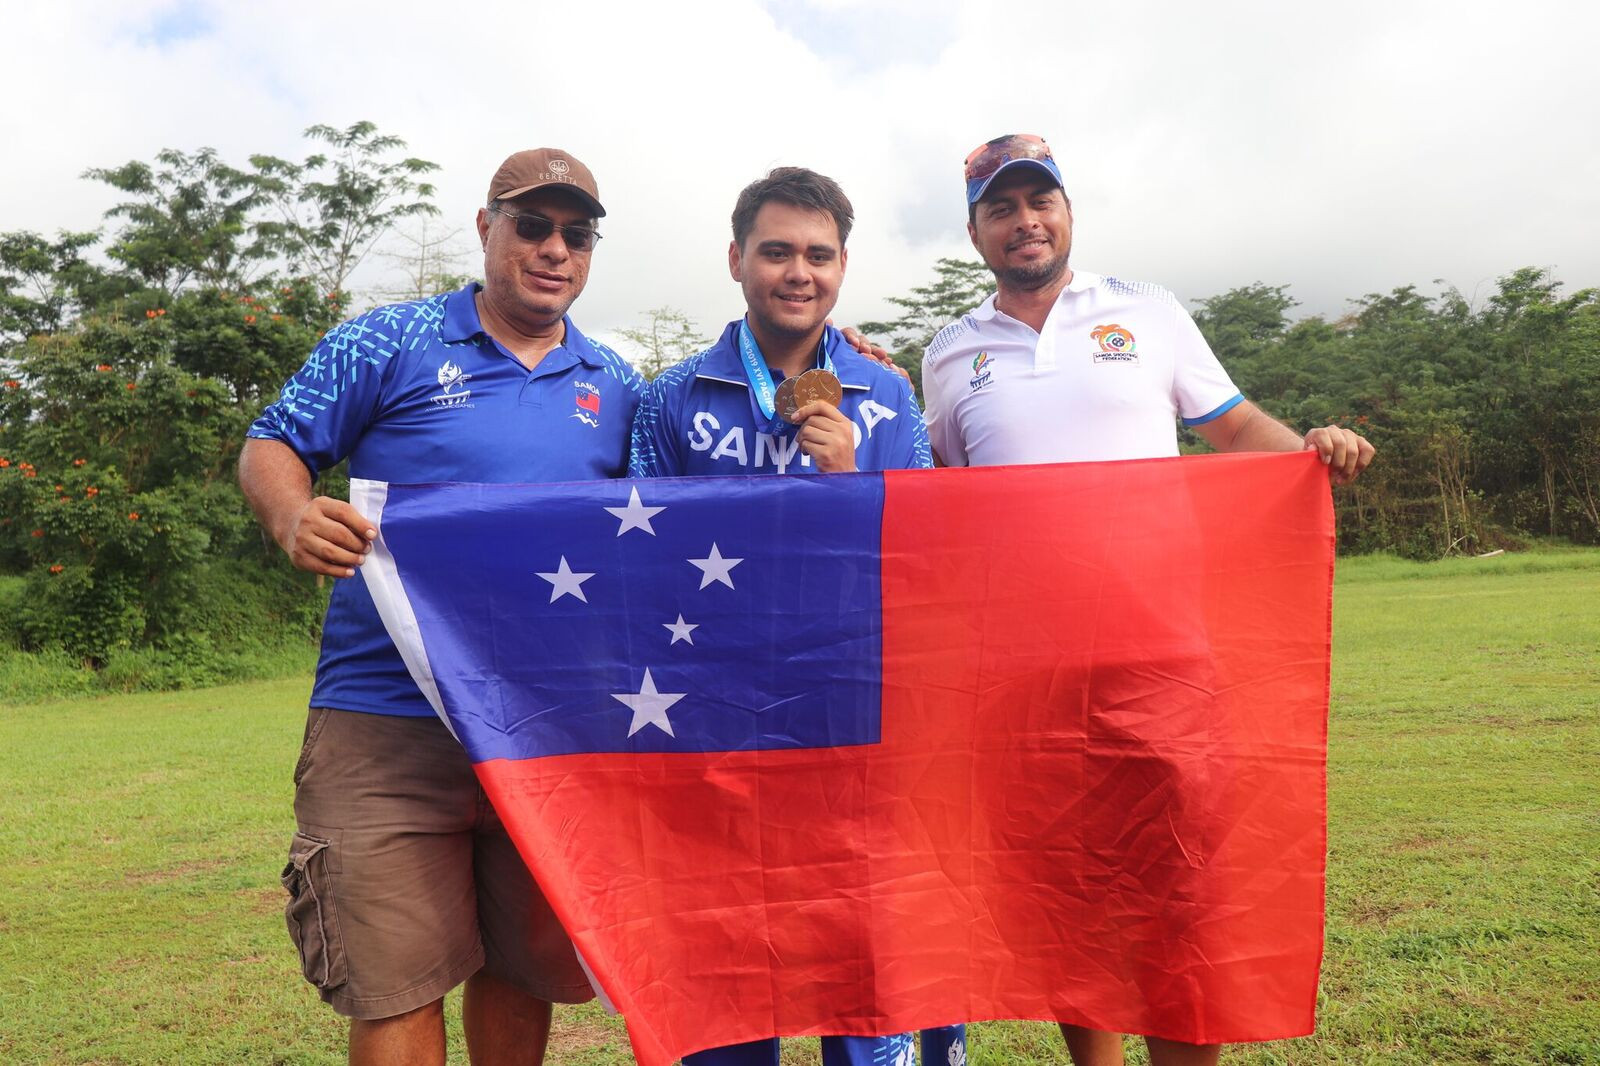 Franco Caffarelli - half-Samoan, half-Italian - celebrates his shooting gold ©Games News Service